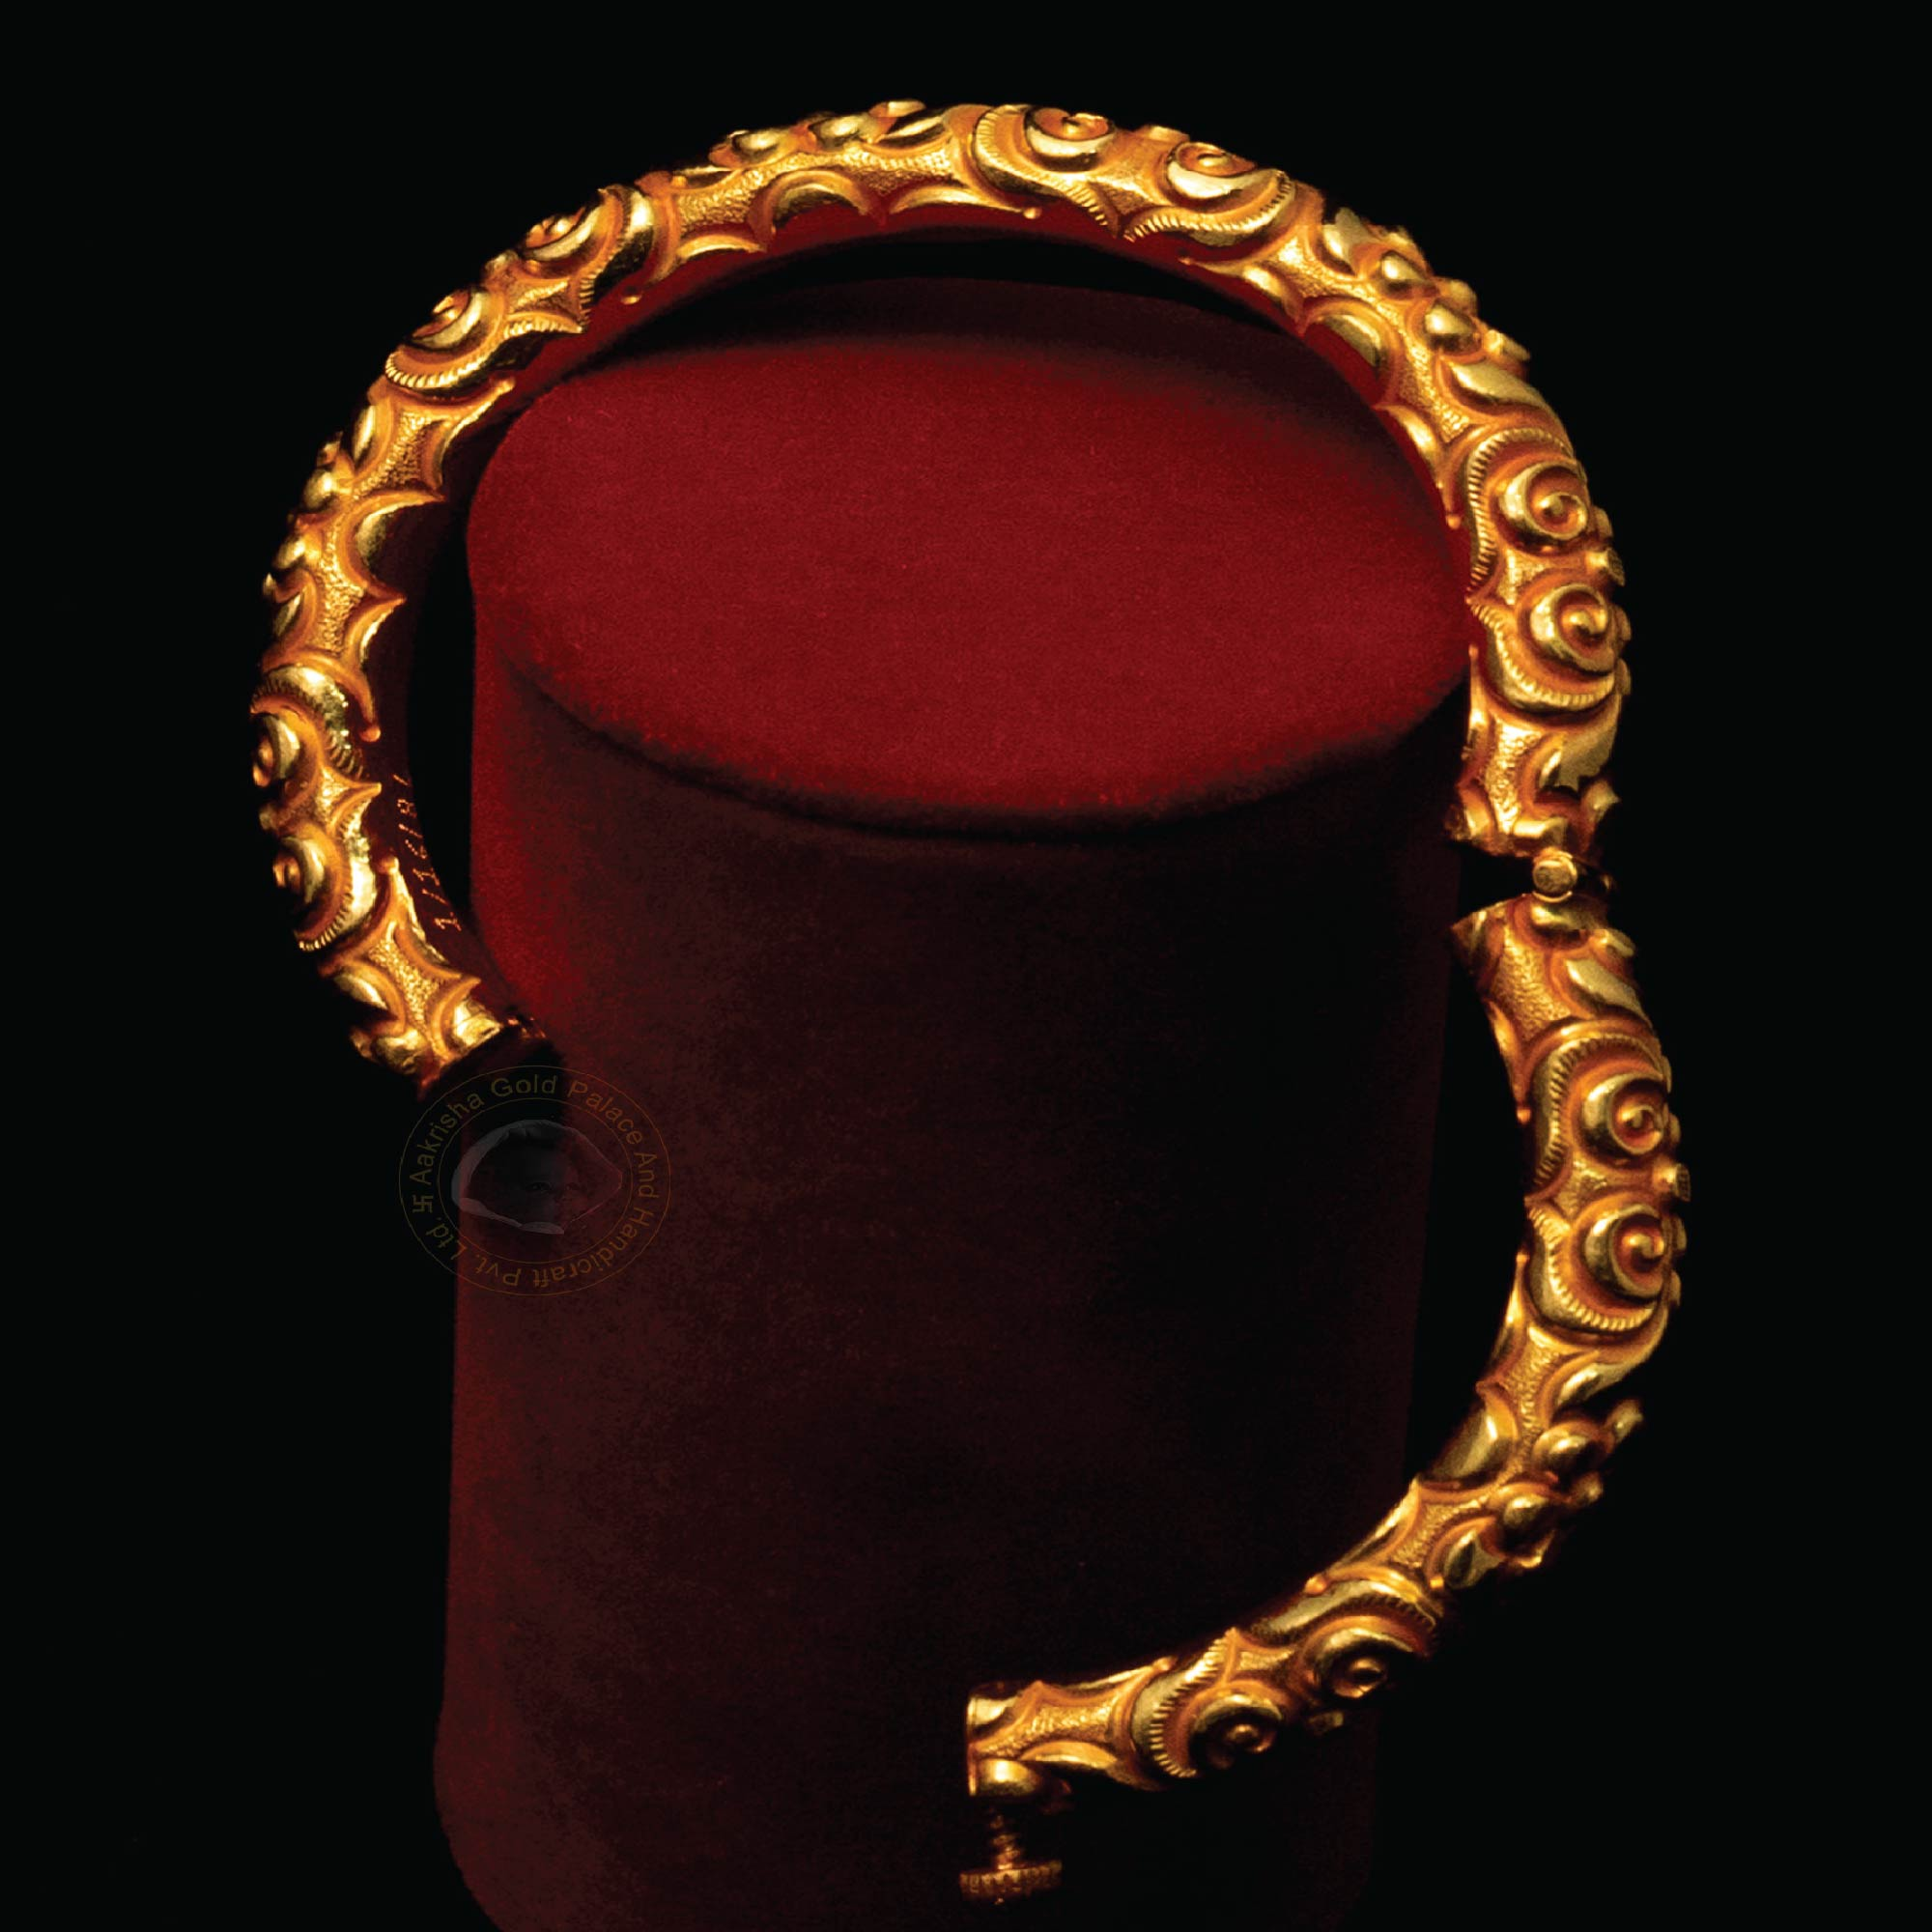 Golden Bangle with Clasps